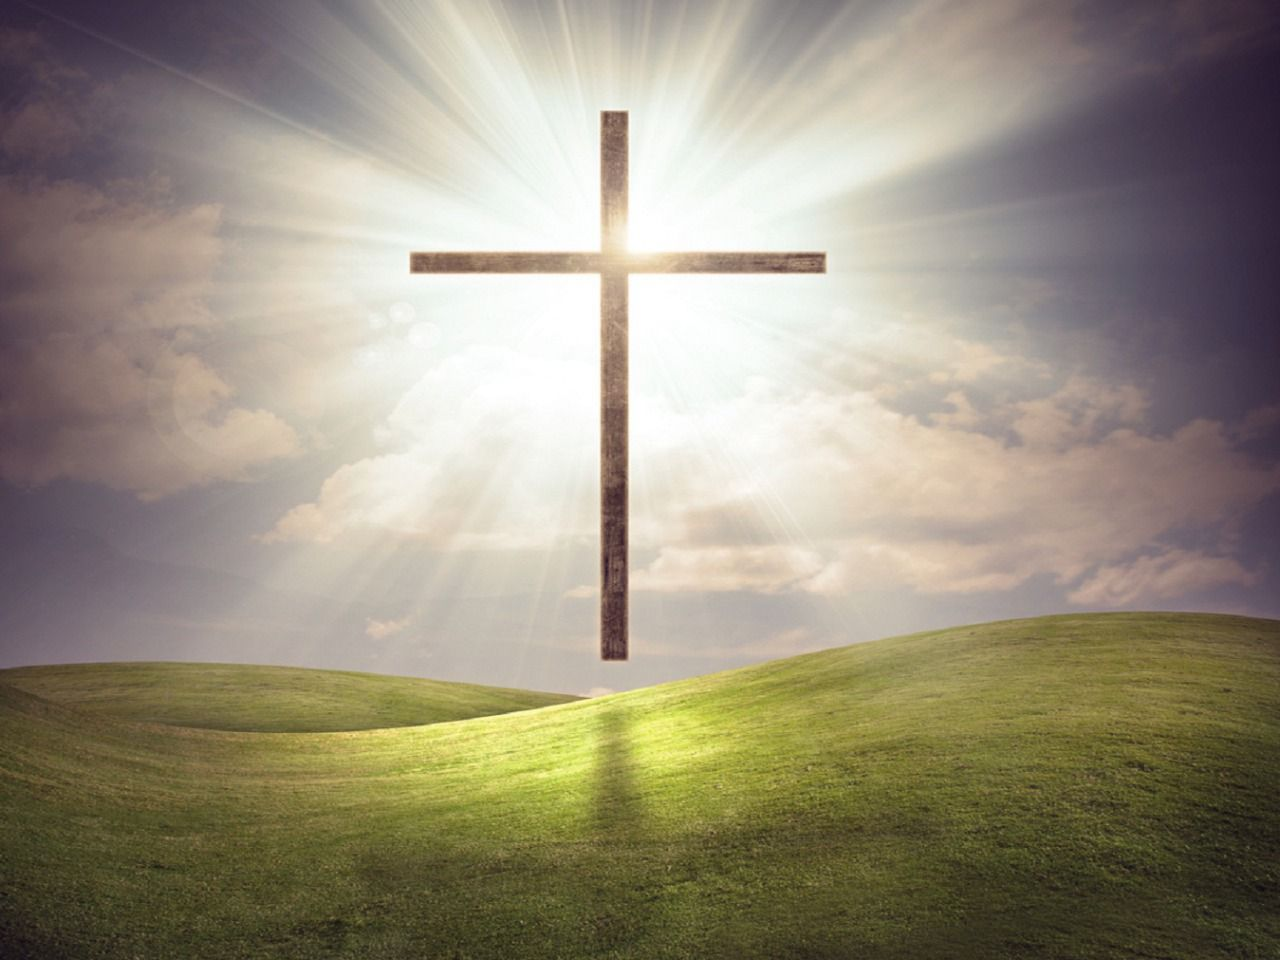 High quality cross wallpaper full hd pictures feelgrafix high quality cross wallpaper full hd pictures voltagebd Gallery